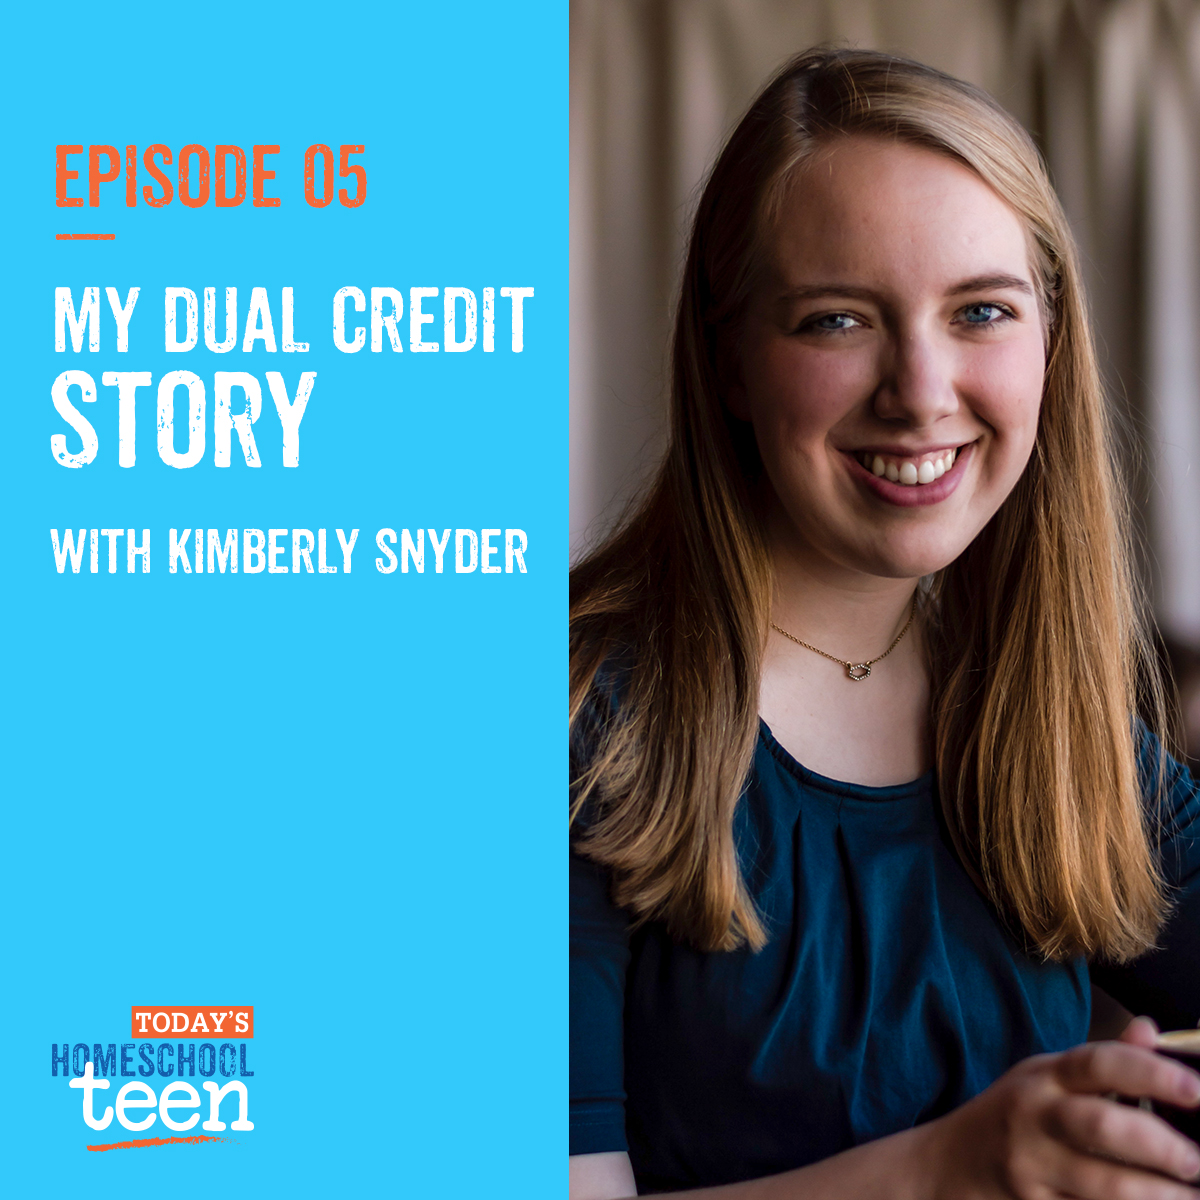 Episode 5: My Dual Credit Story with Kimberly Snyder